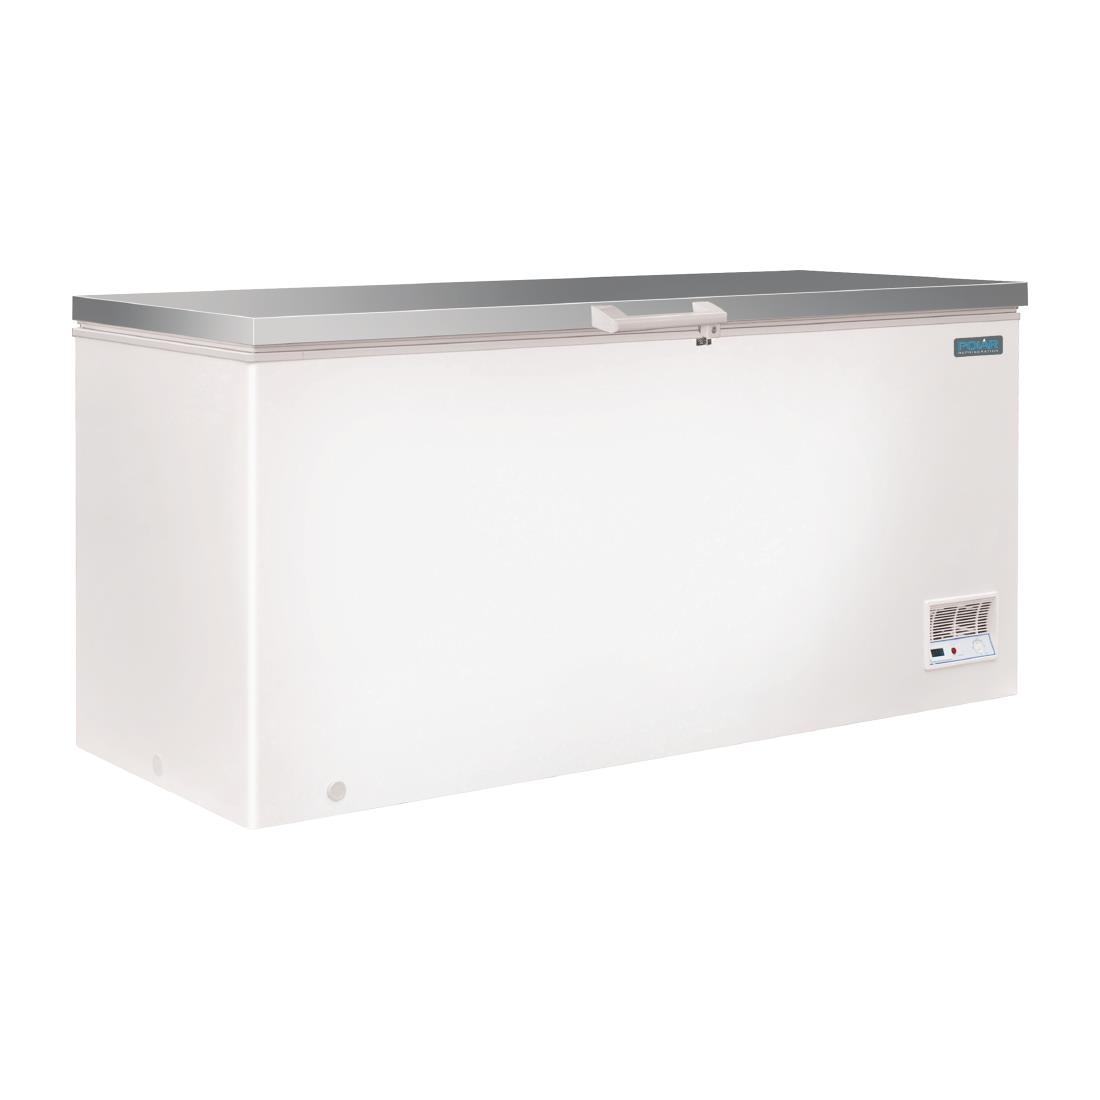 Polar Chest Freezer With Stainless Steel Lid 516ltr Cm531 Buy 100 Box R600a